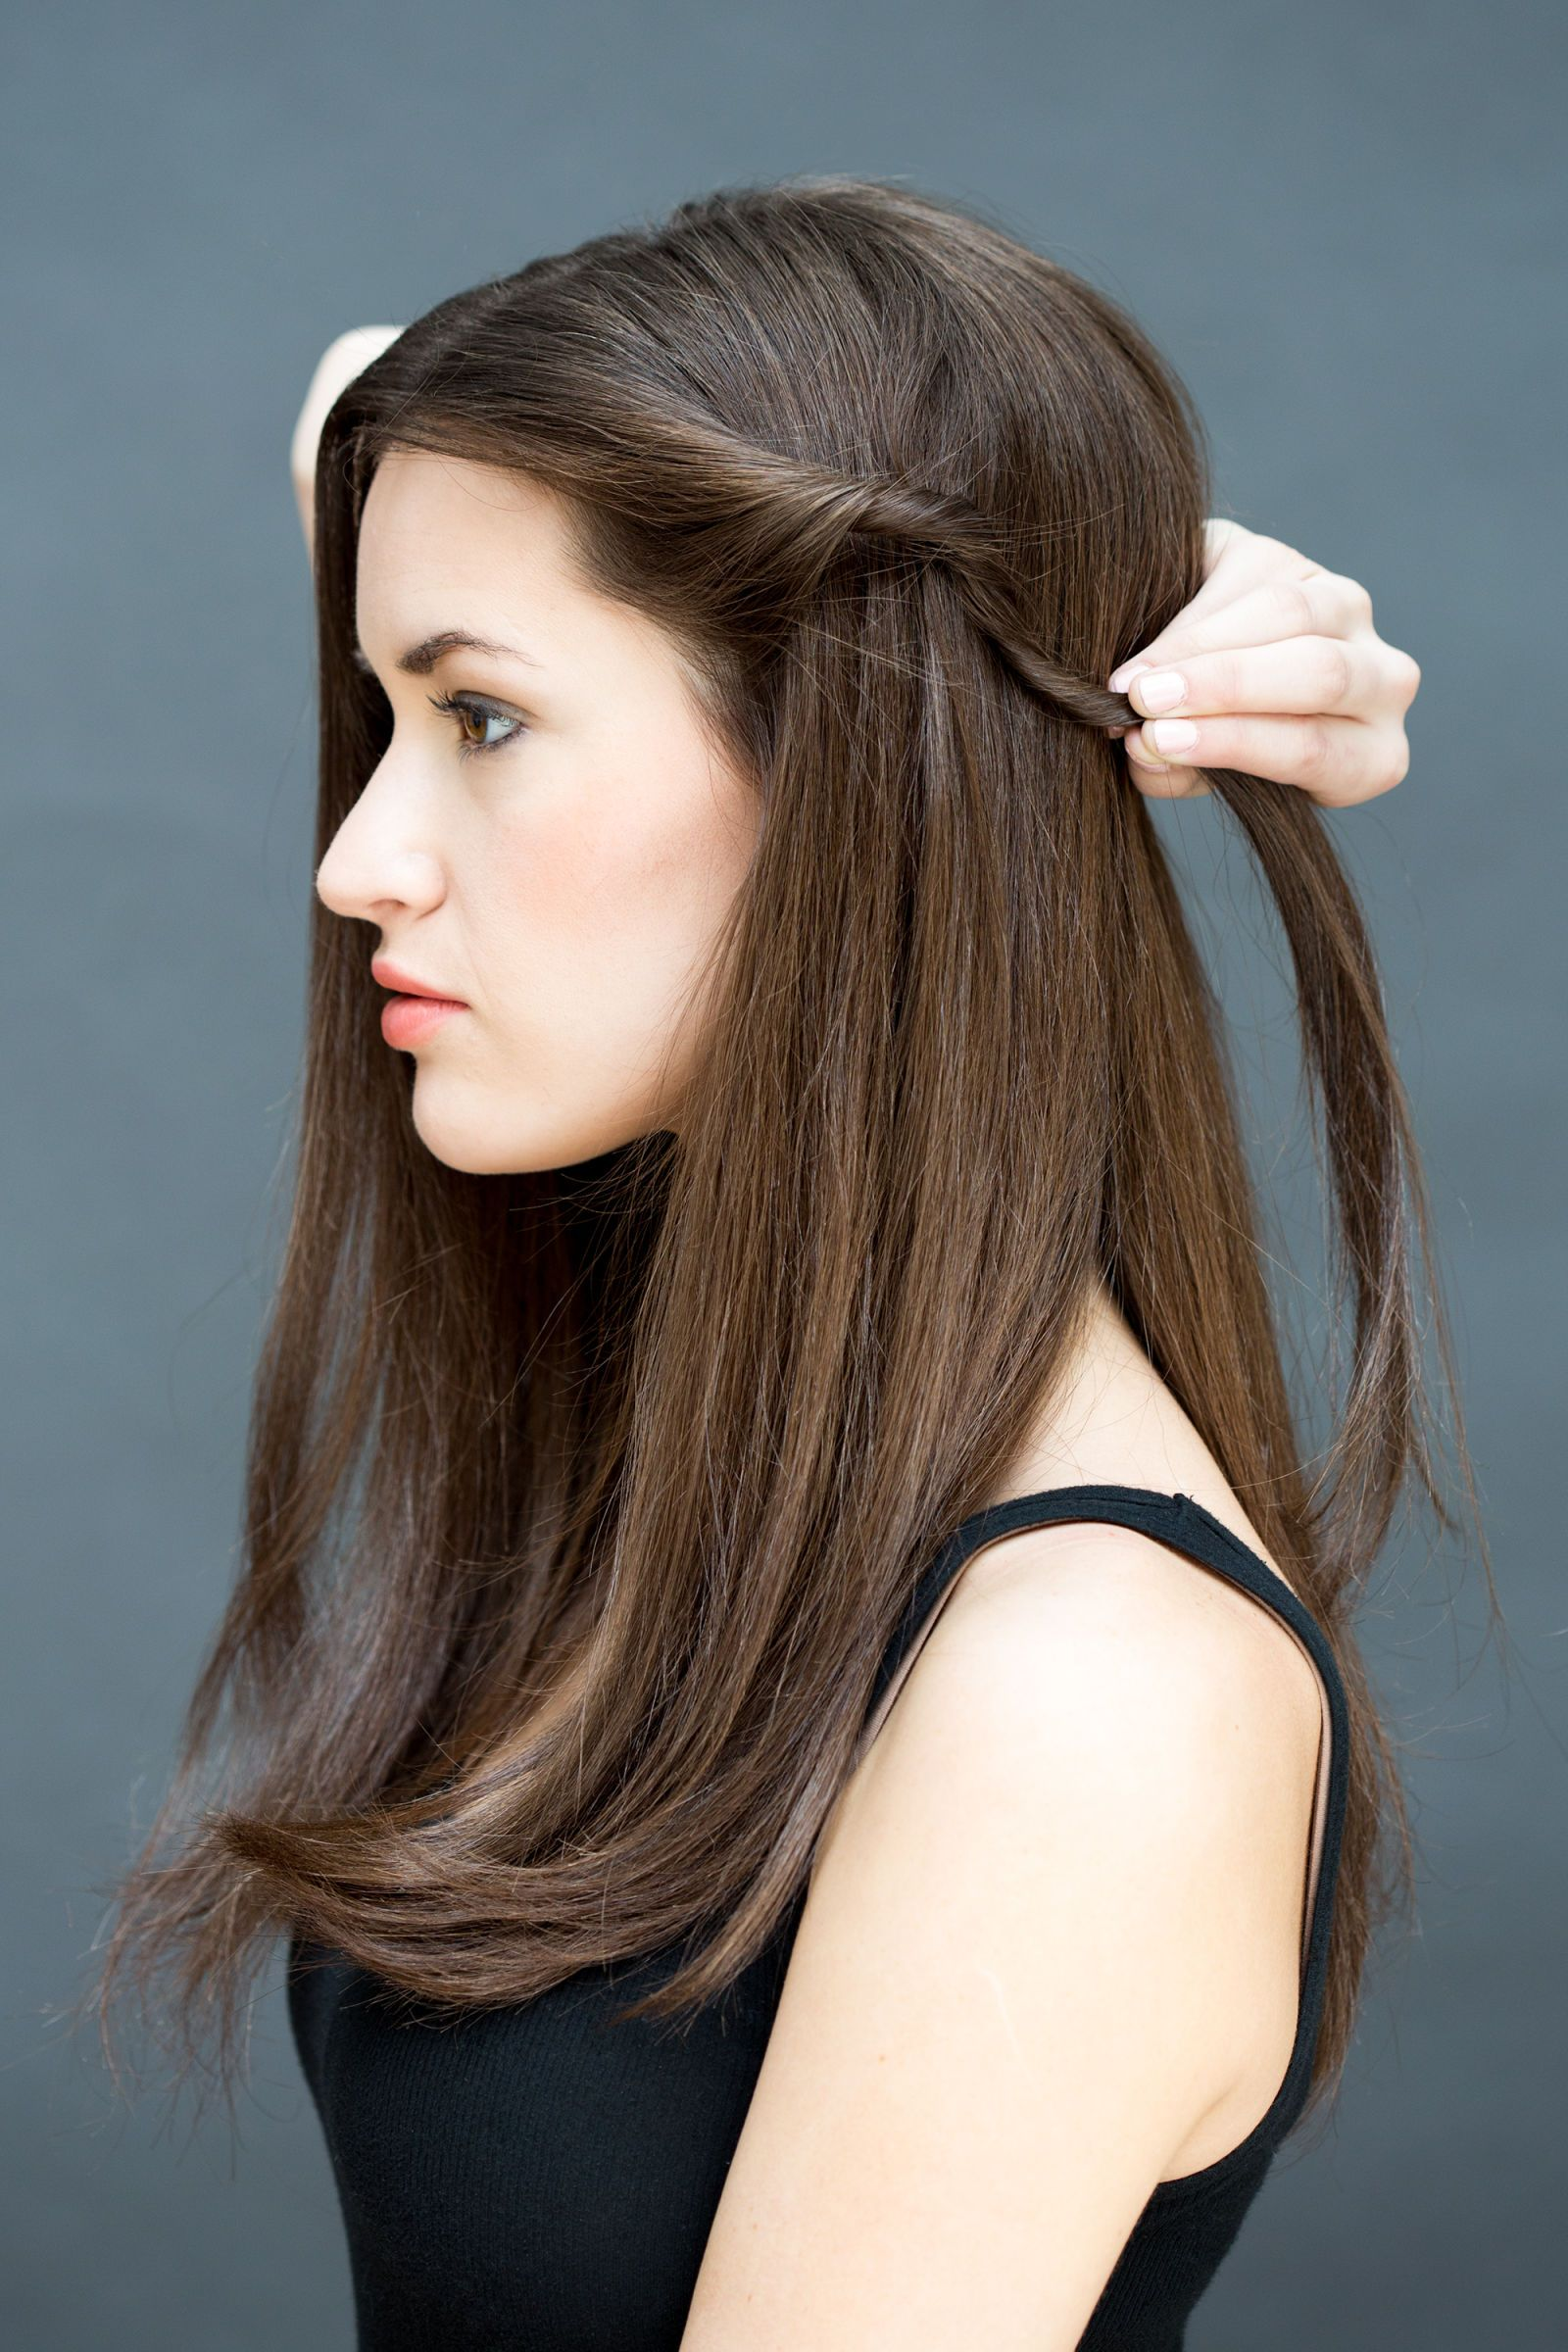 Super Easy Hairstyles You Can Do In Less Than A Minute Hair Styles Hair Beauty Easy Hairstyles